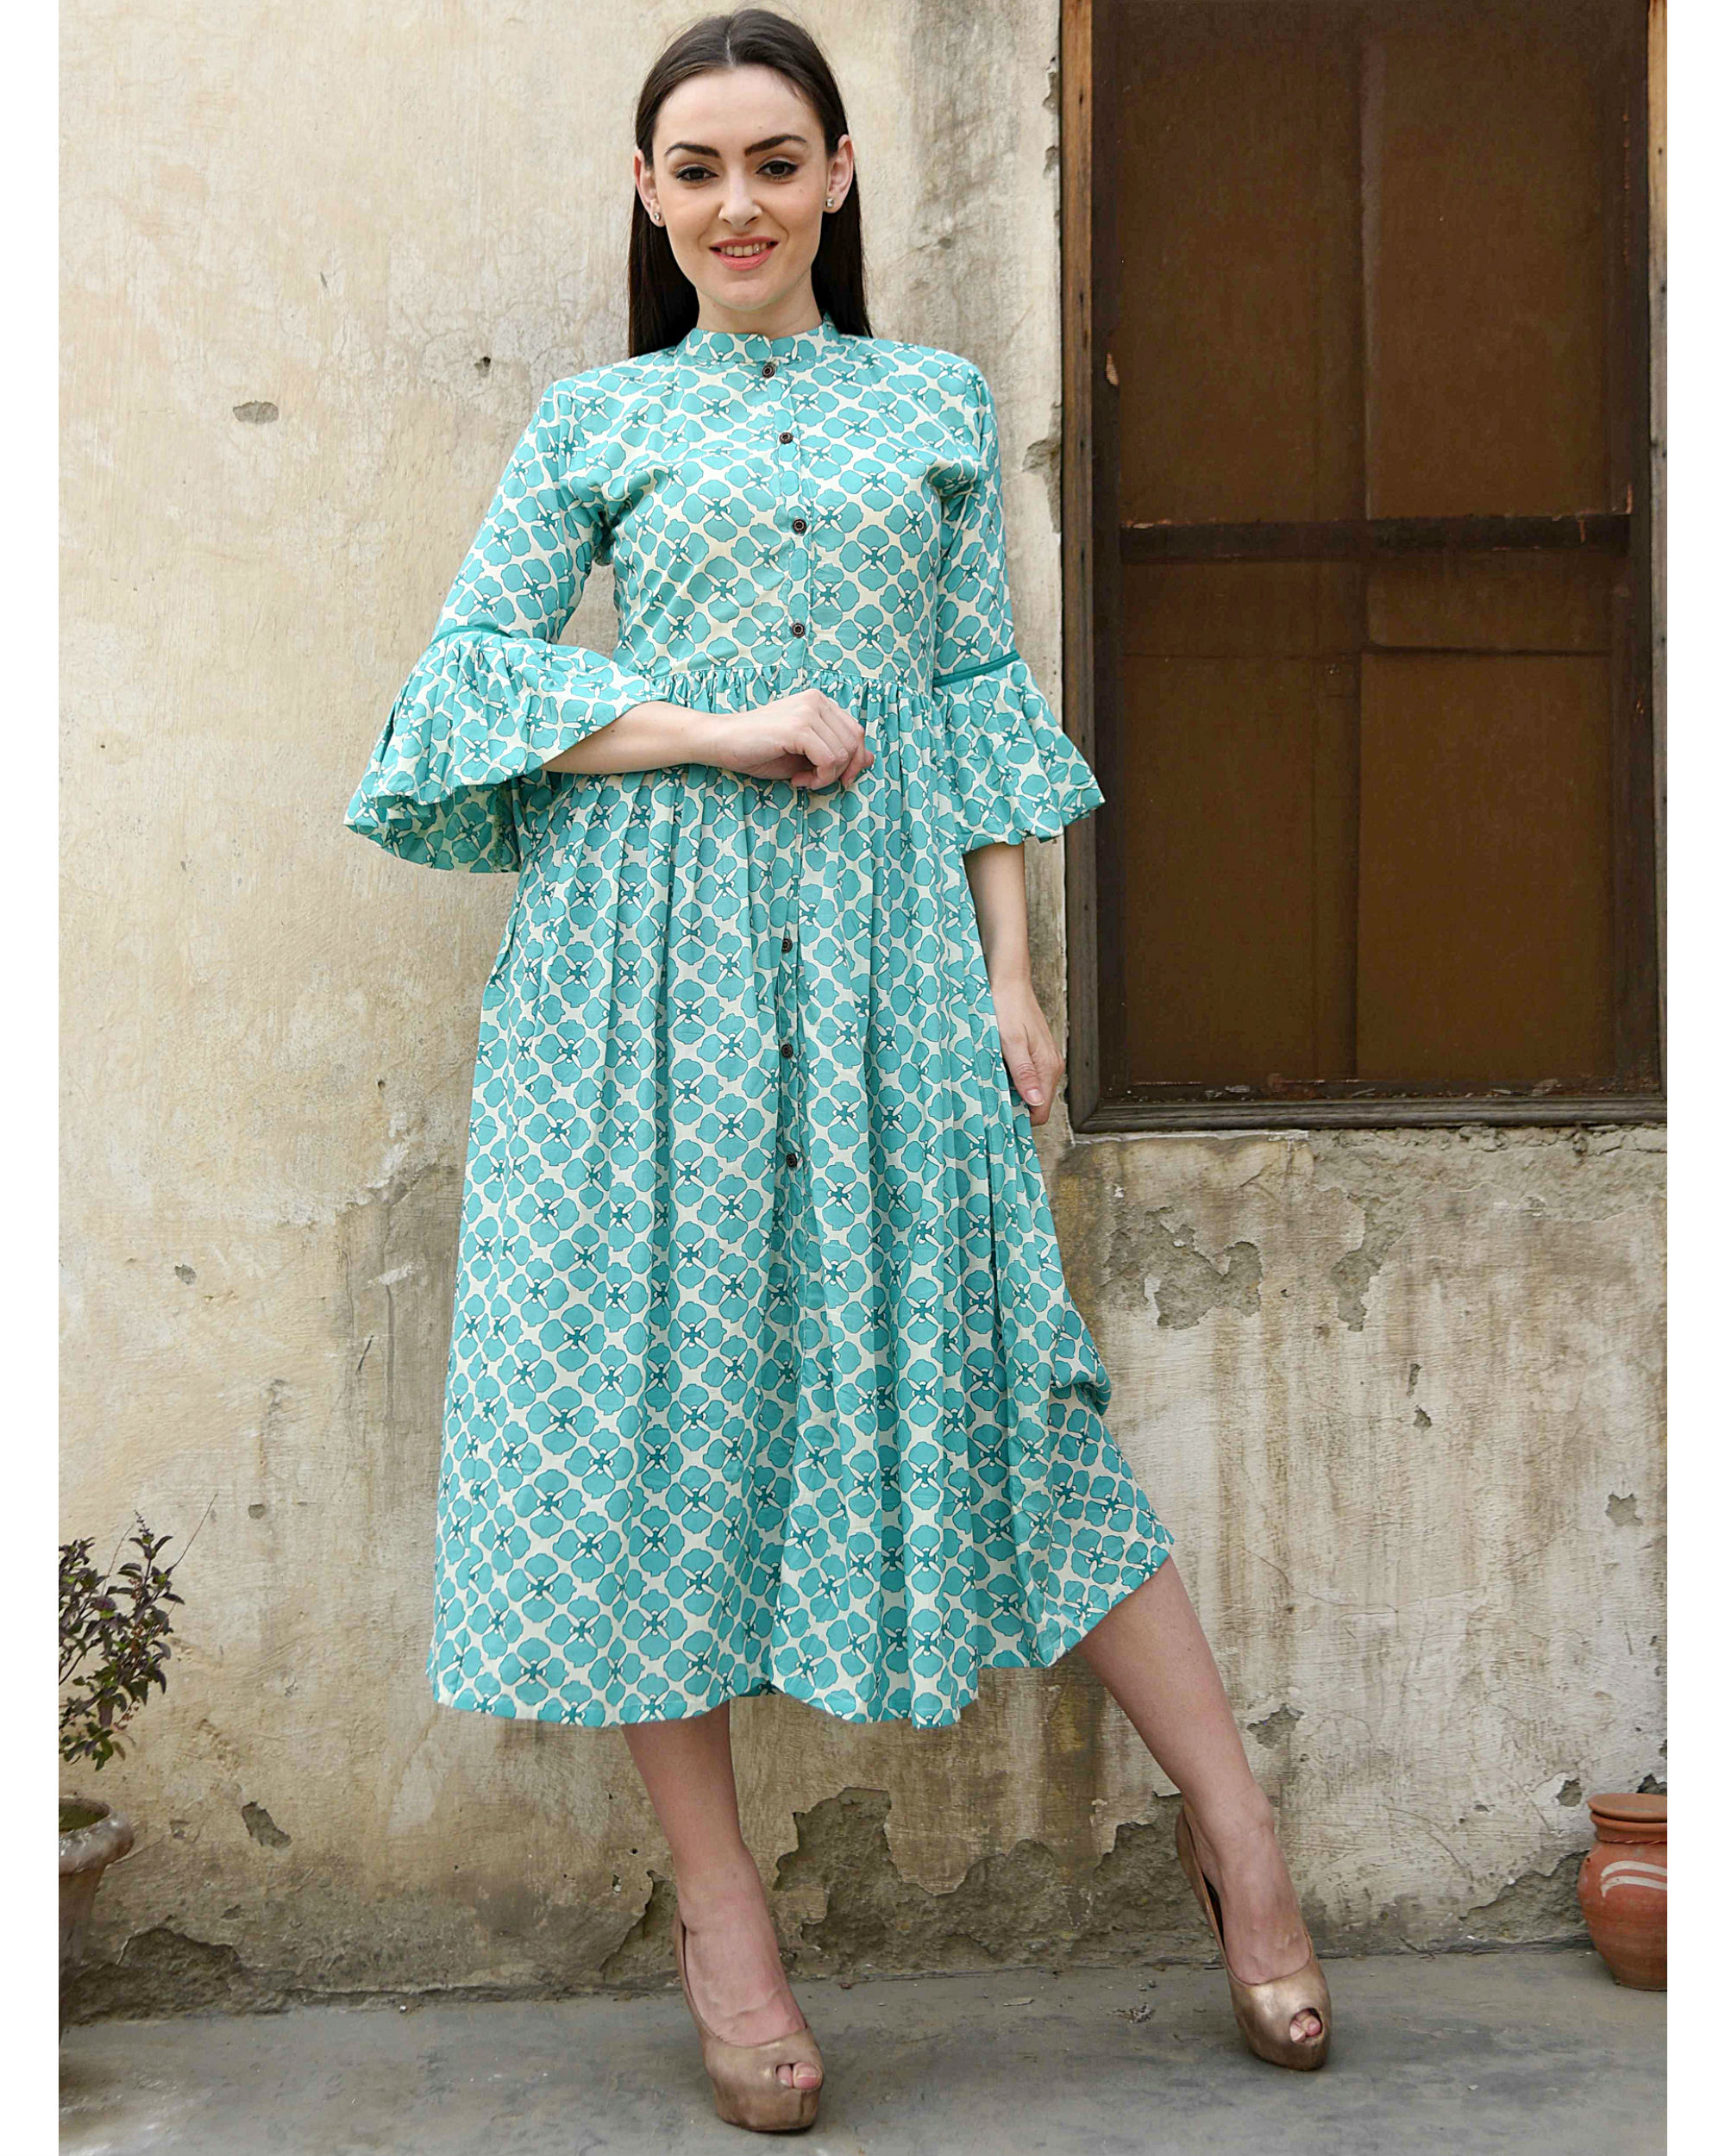 Turquoise bell sleeves dress